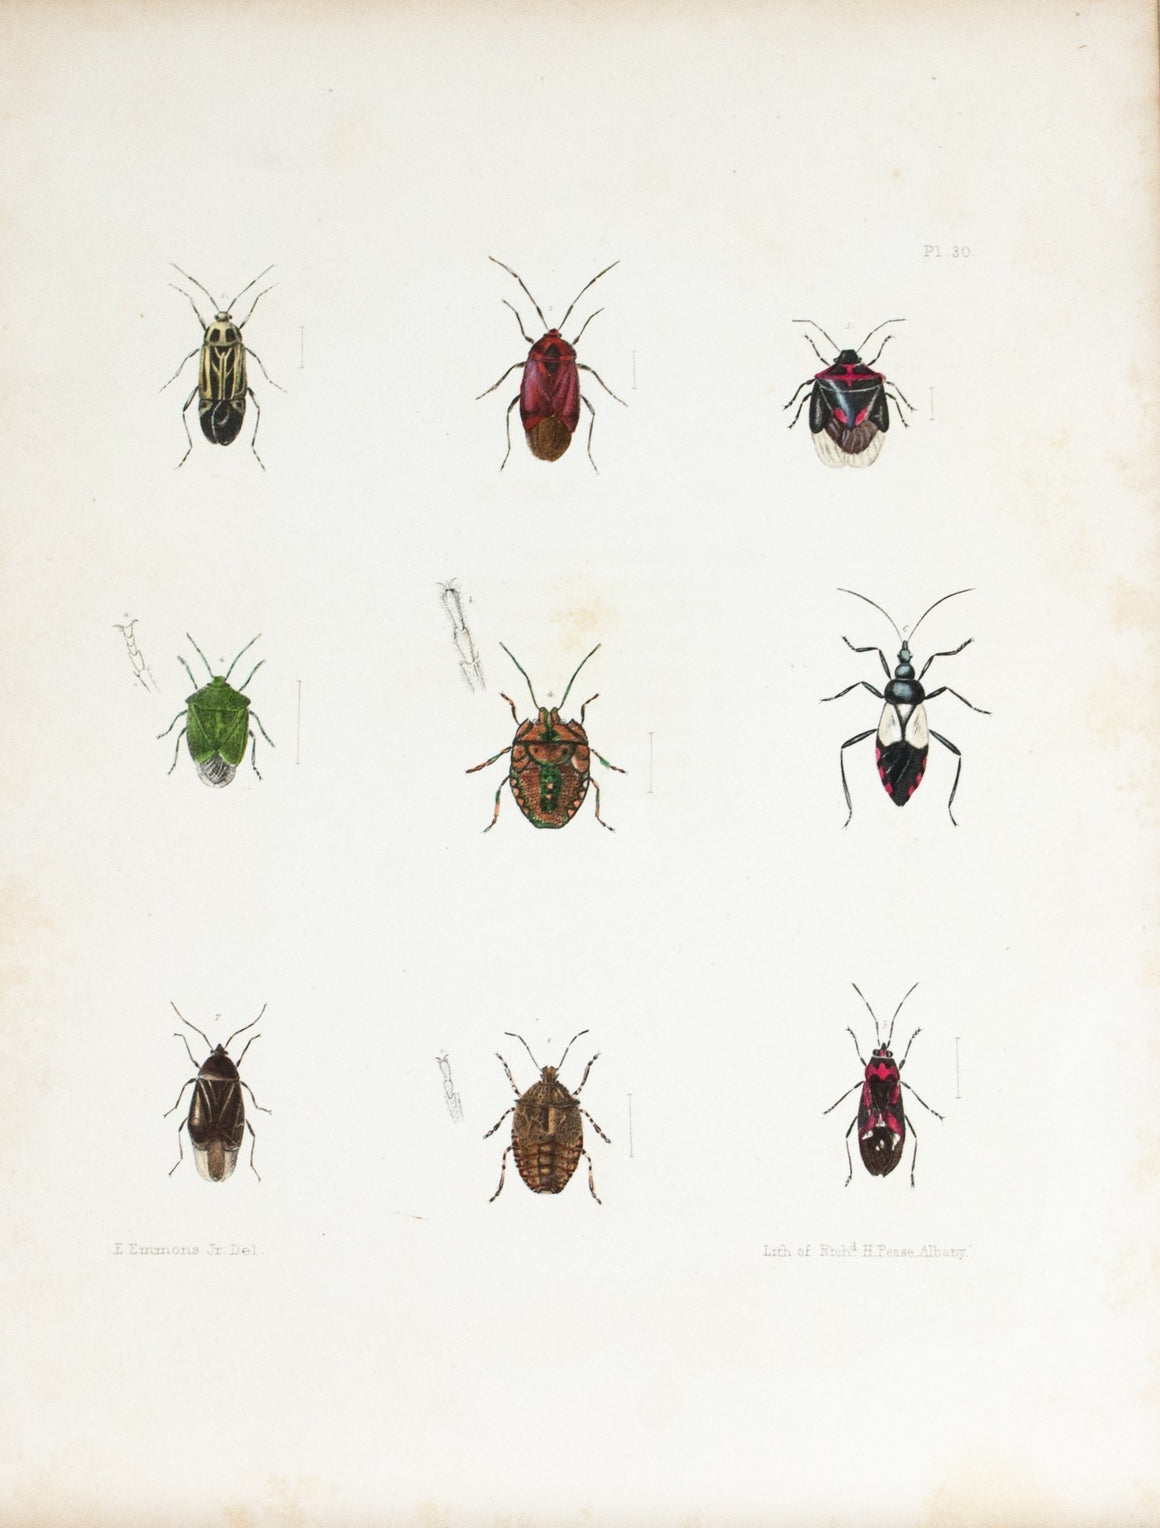 1854 Plate 30 - Aphids and Plant Bugs - Emmons